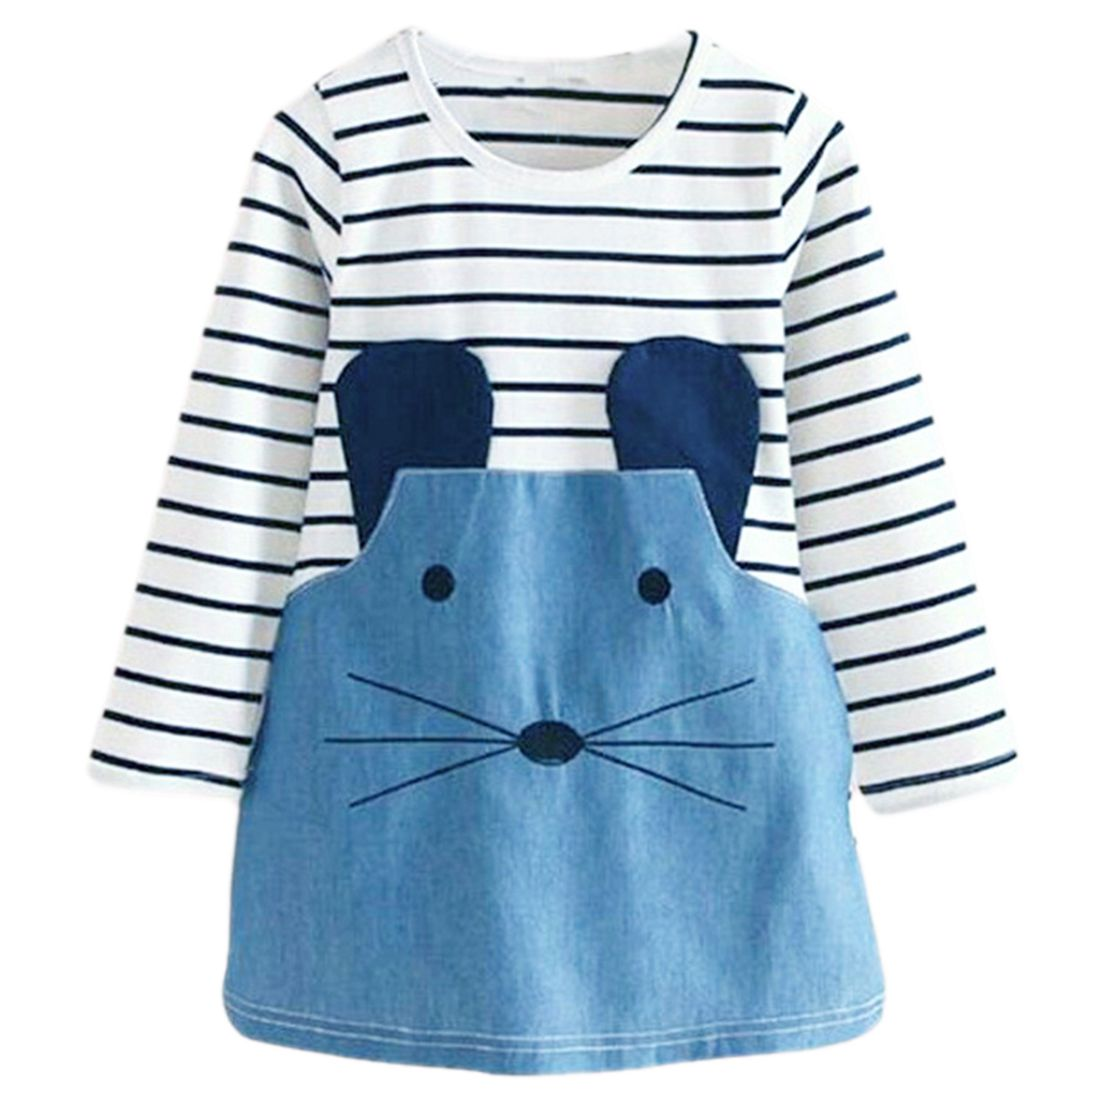 Children New Fashion Striped Patchwork Character Girl Dresses Cute Mouse Clothing Girls Dress Denim Kids Clothes(Long Sleeve)